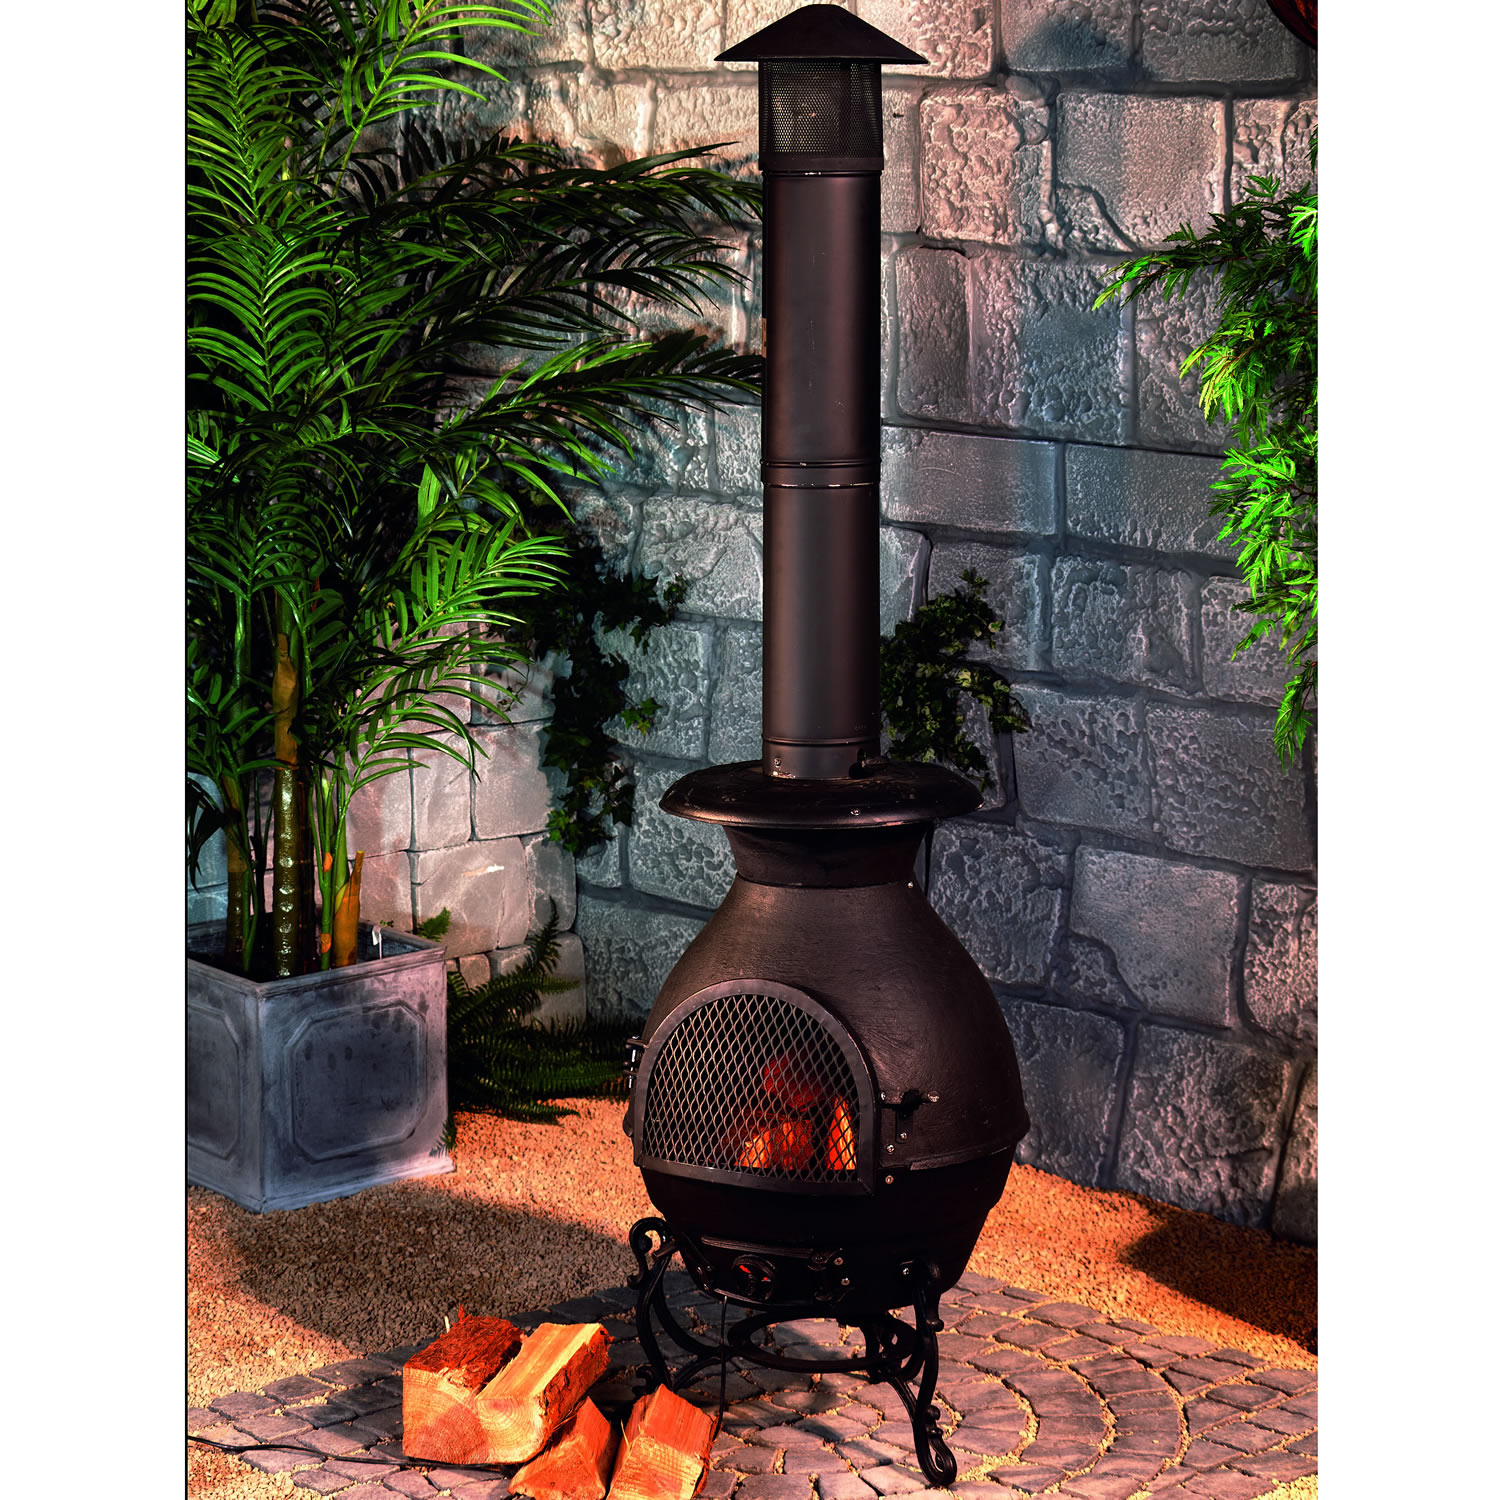 Patio Chiminea Fireplace On Chic Paver For Patio Decor Ideas